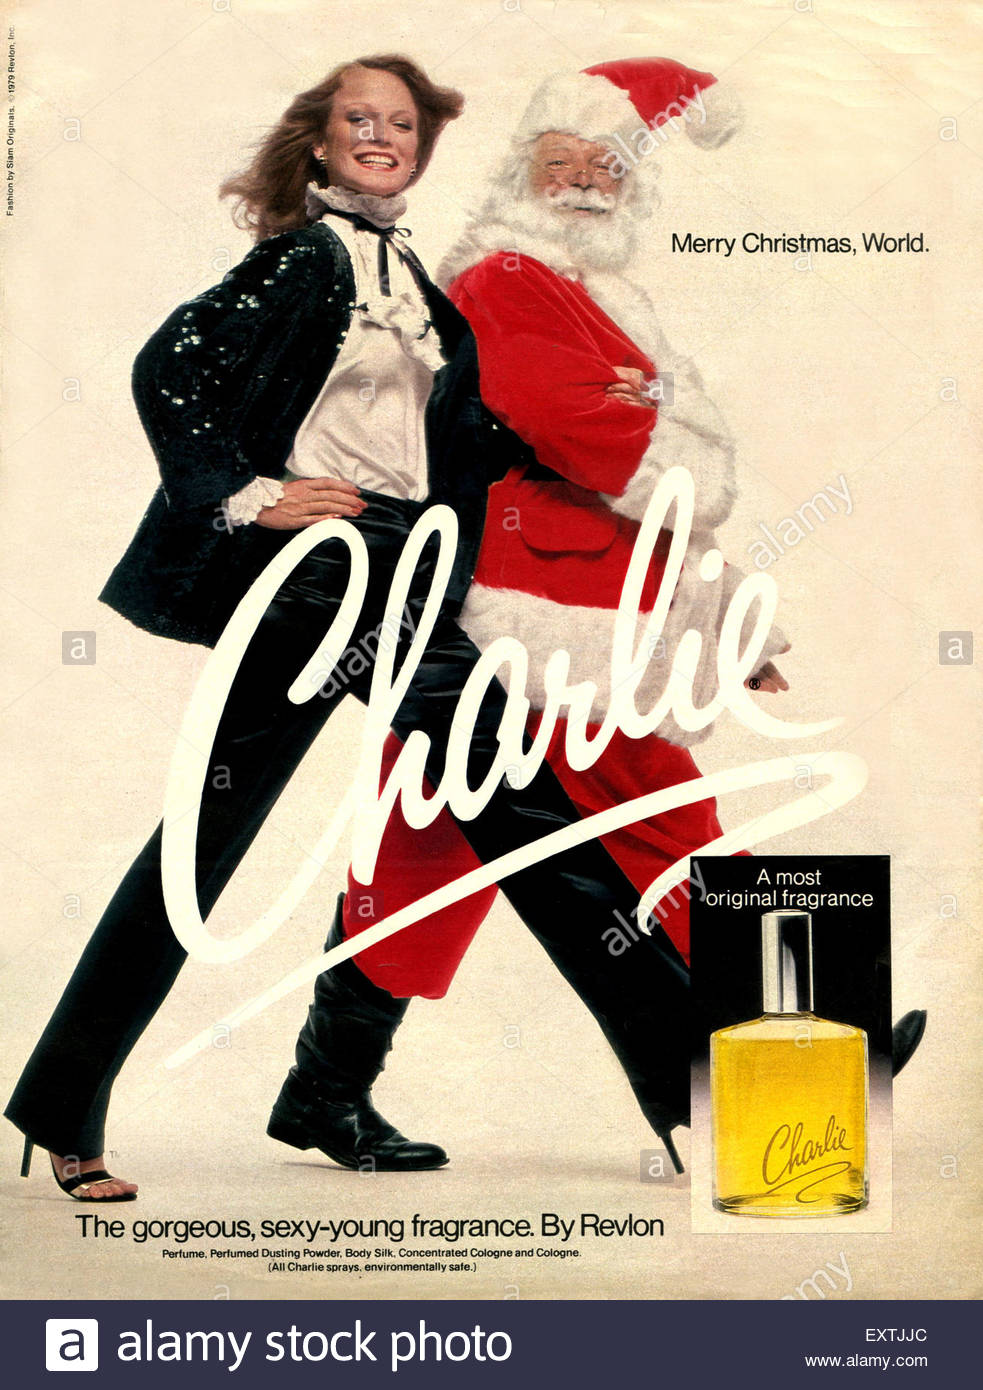 1970s-usa-revlon-charlie-magazine-advert-EXTJJC